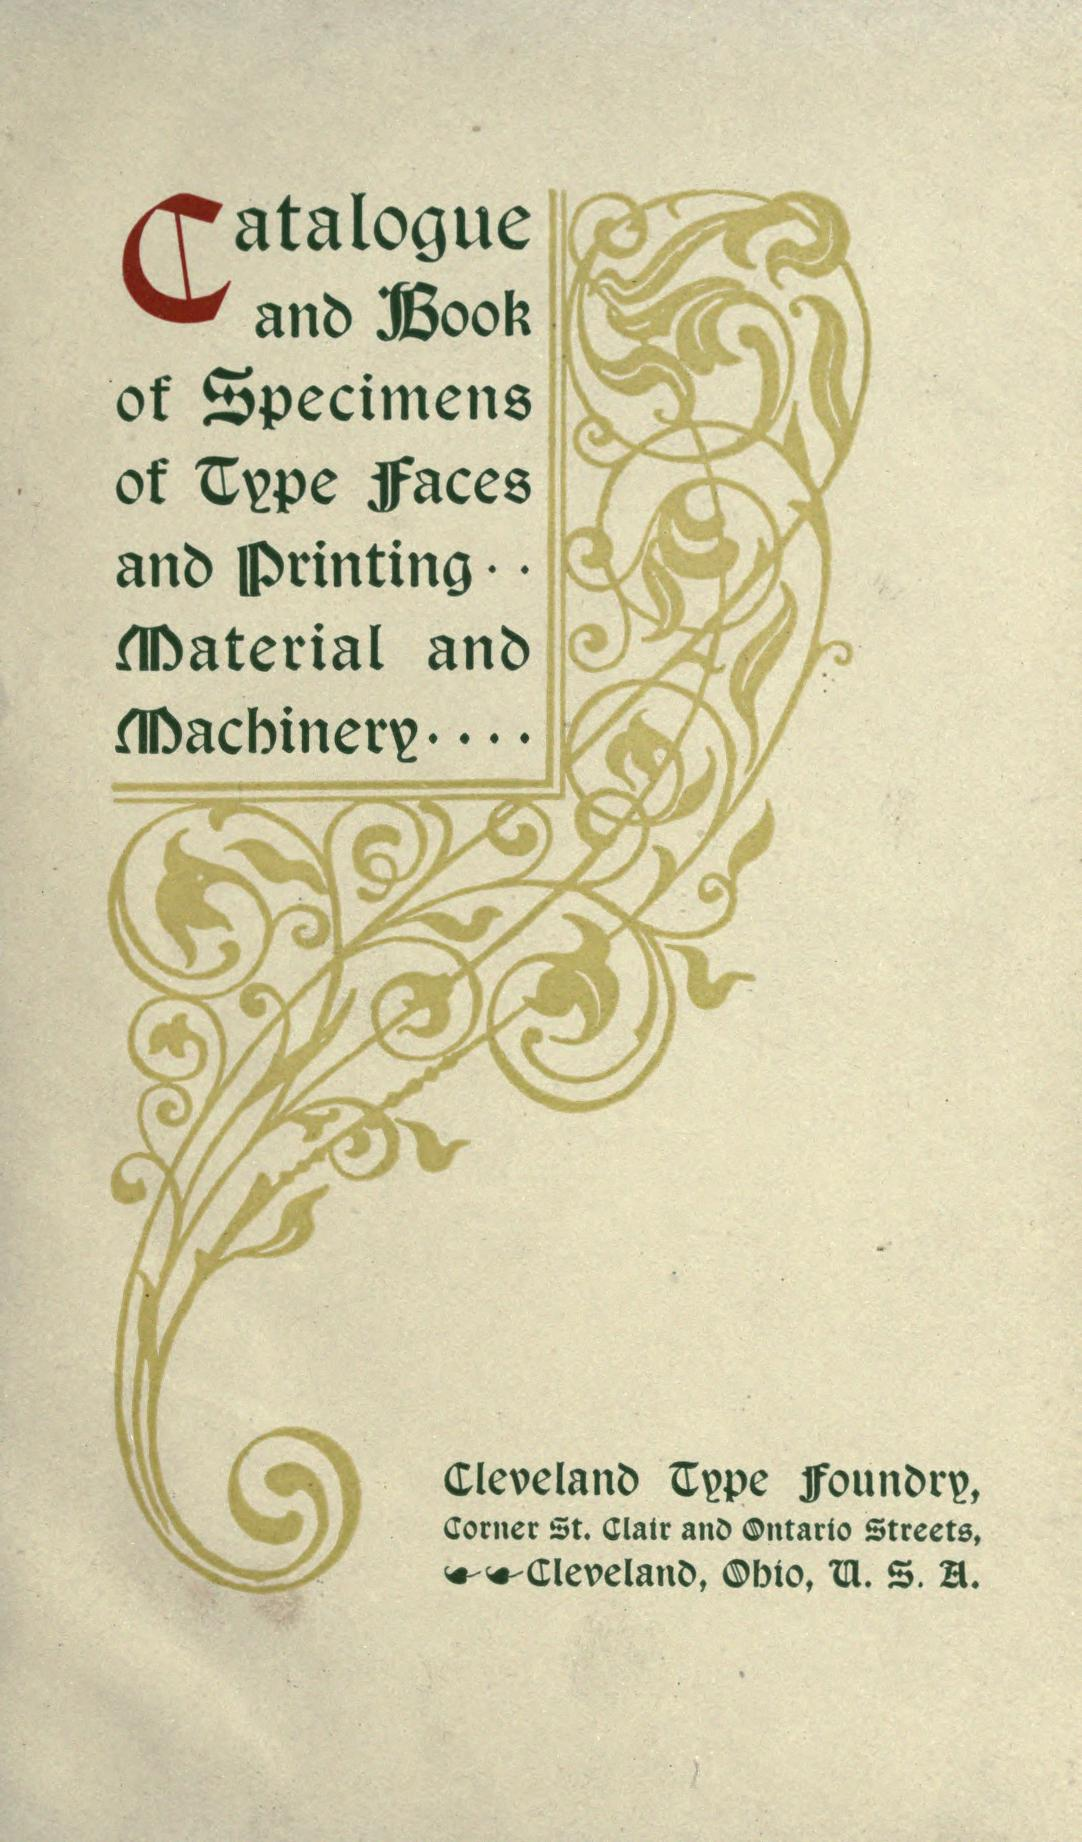 Catalogue and book of specimens of type faces and printing material and machinery by Cleveland Type Foundry. 1 edition (1 ebook) - first published in 1895